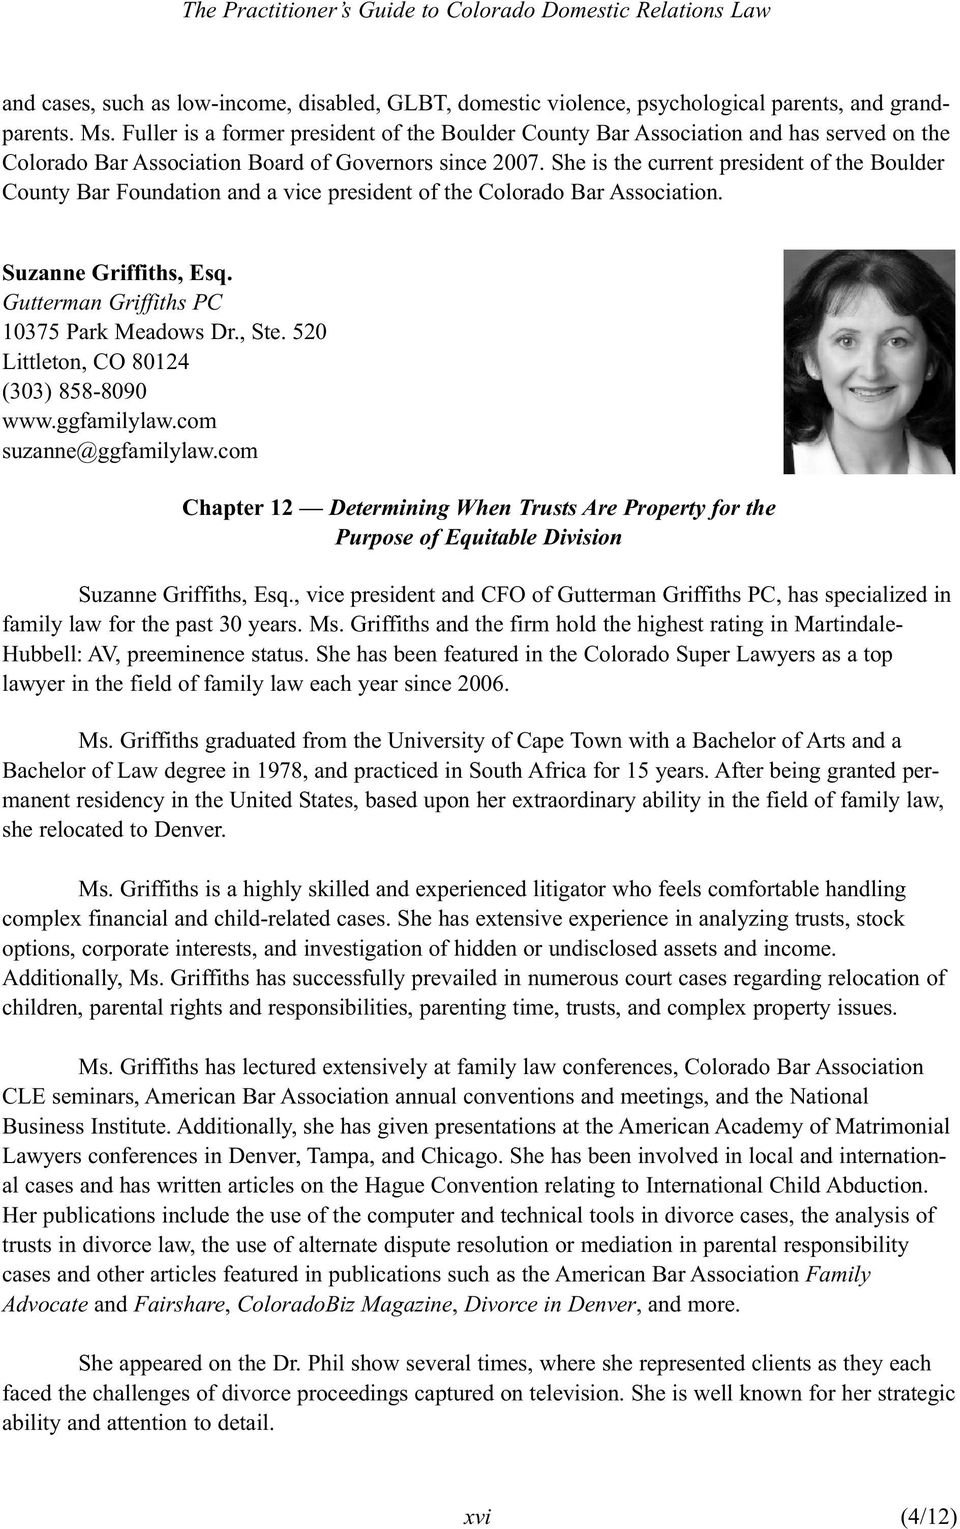 She is the current president of the Boulder County Bar Foundation and a vice president of the Colorado Bar Association. Suzanne Griffiths, Esq. Gutterman Griffiths PC 10375 Park Meadows Dr., Ste.